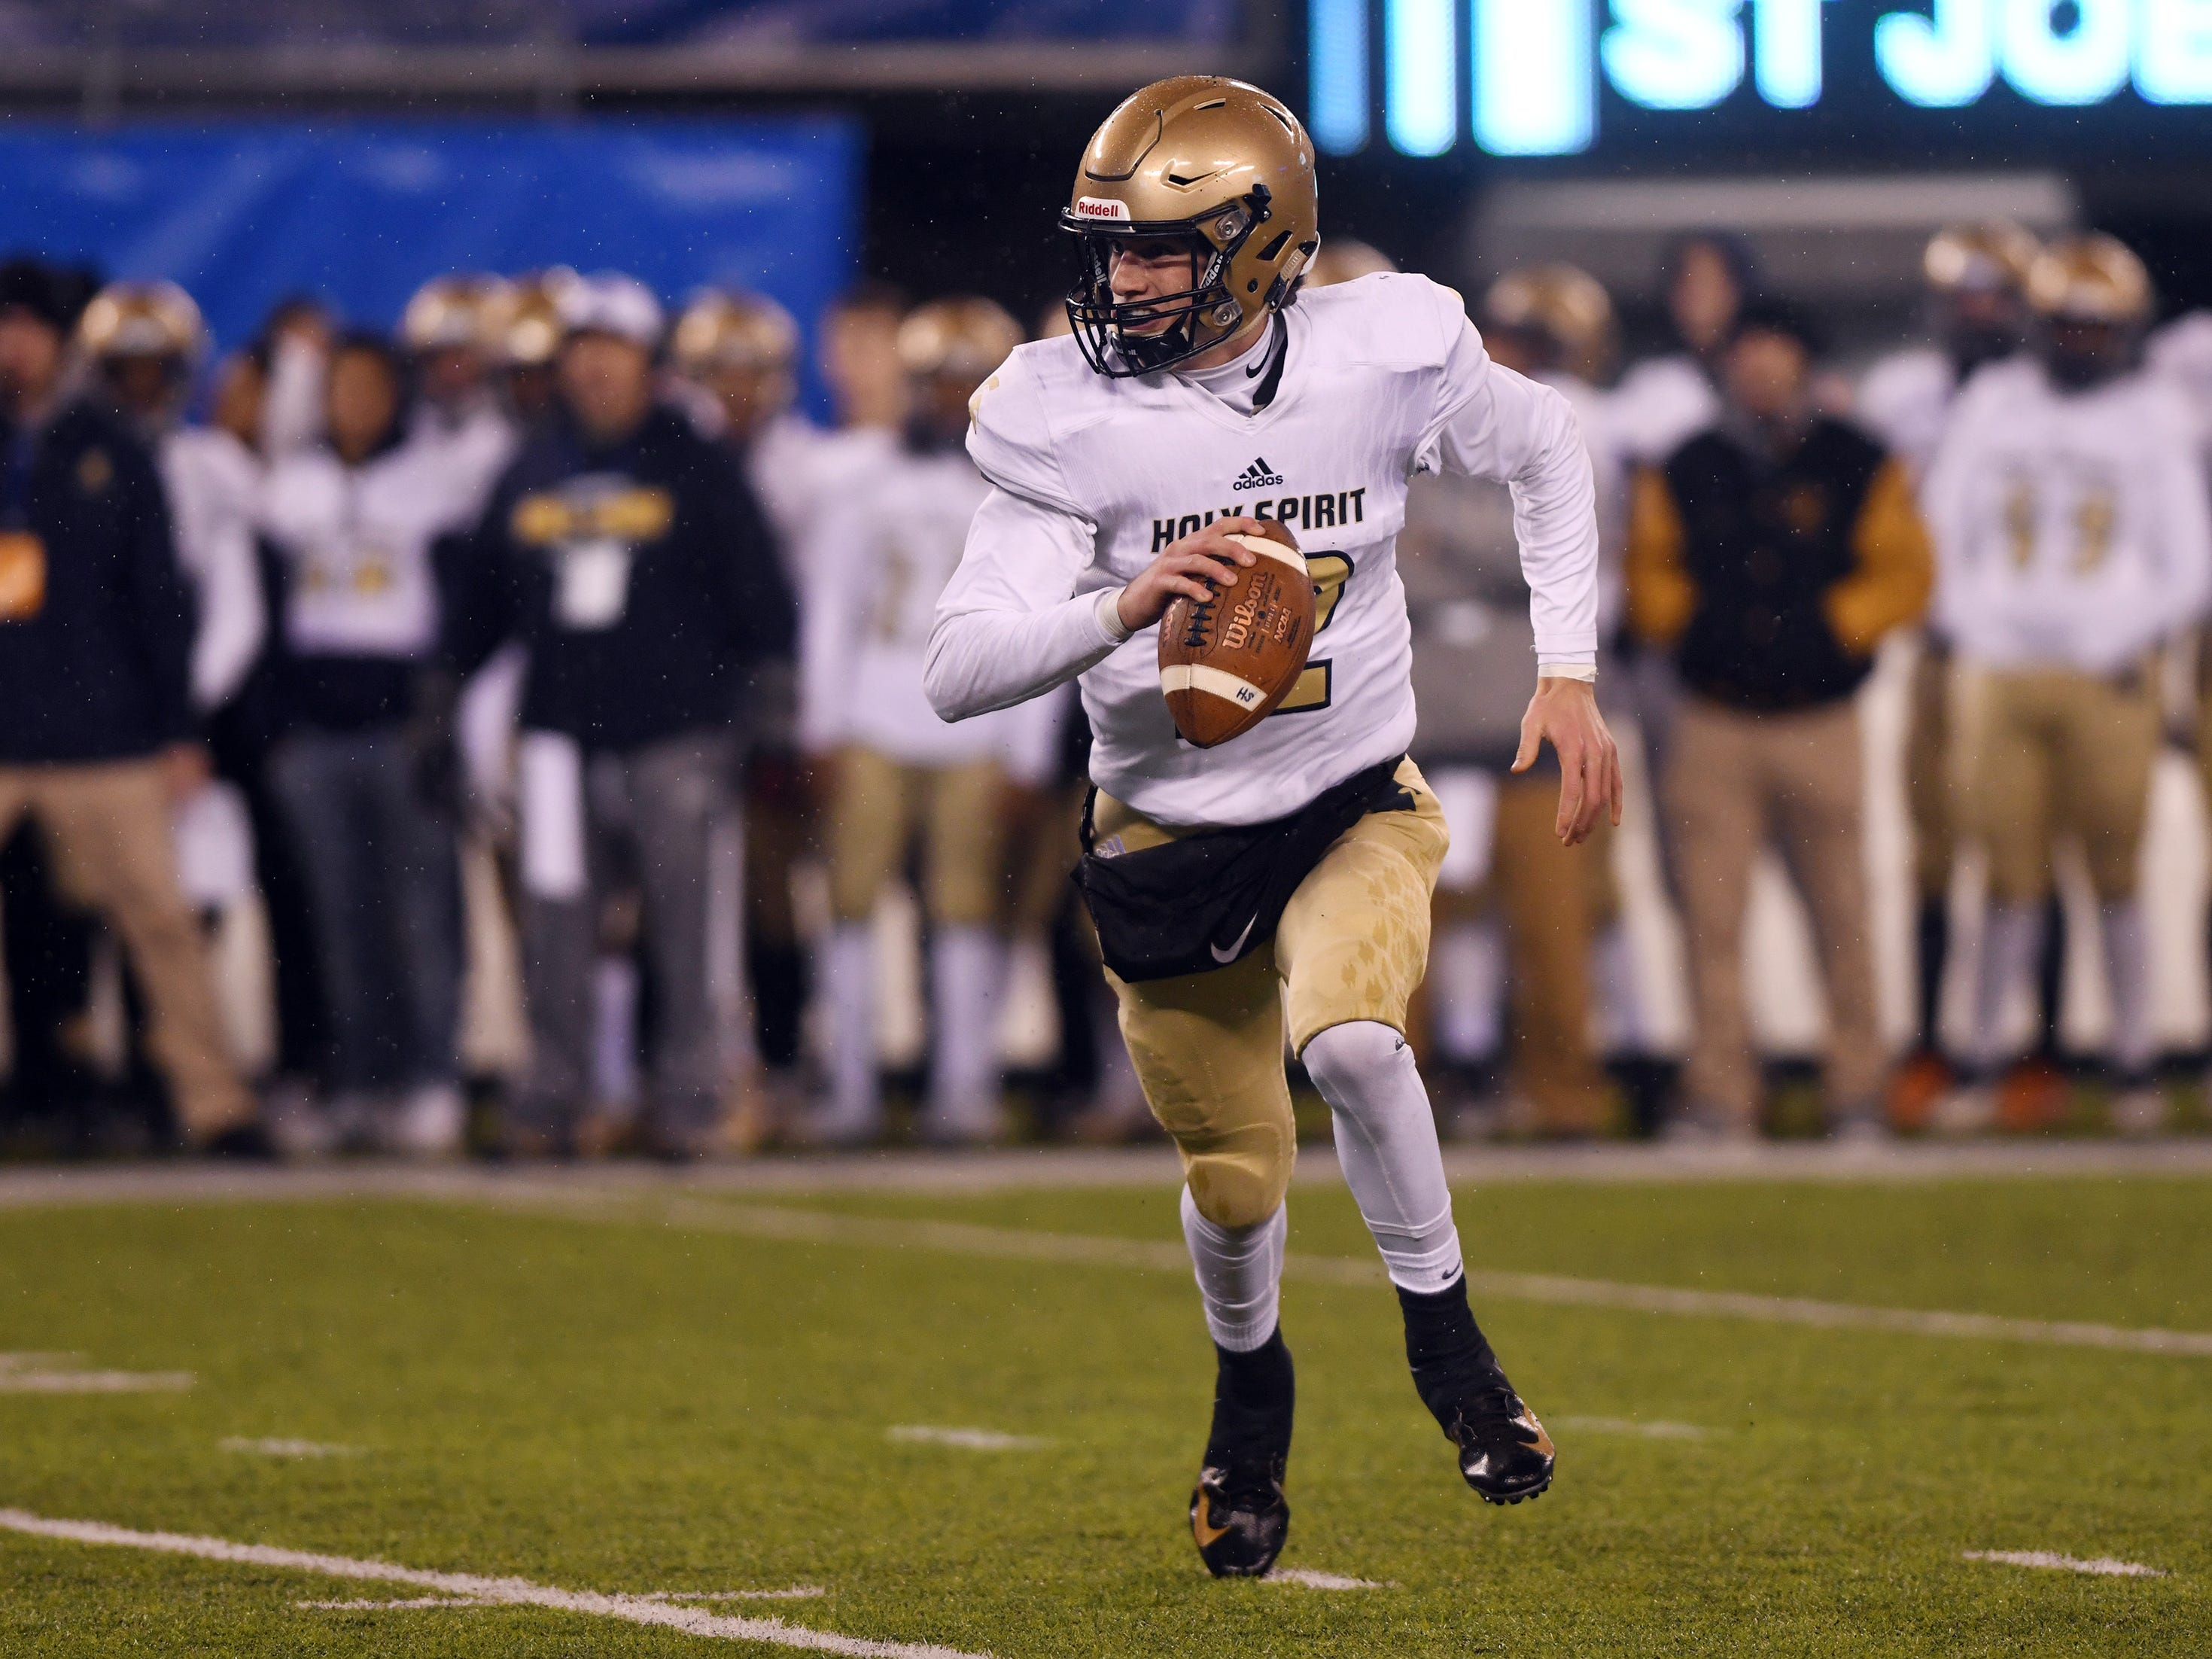 Holy Spirit's QB, Ryan Yost looks for a open receiver during a game against St. Joseph. The Wildcats defeated the Spartans, 41-22 at MetLife Stadium on Friday, November 30, 2018.